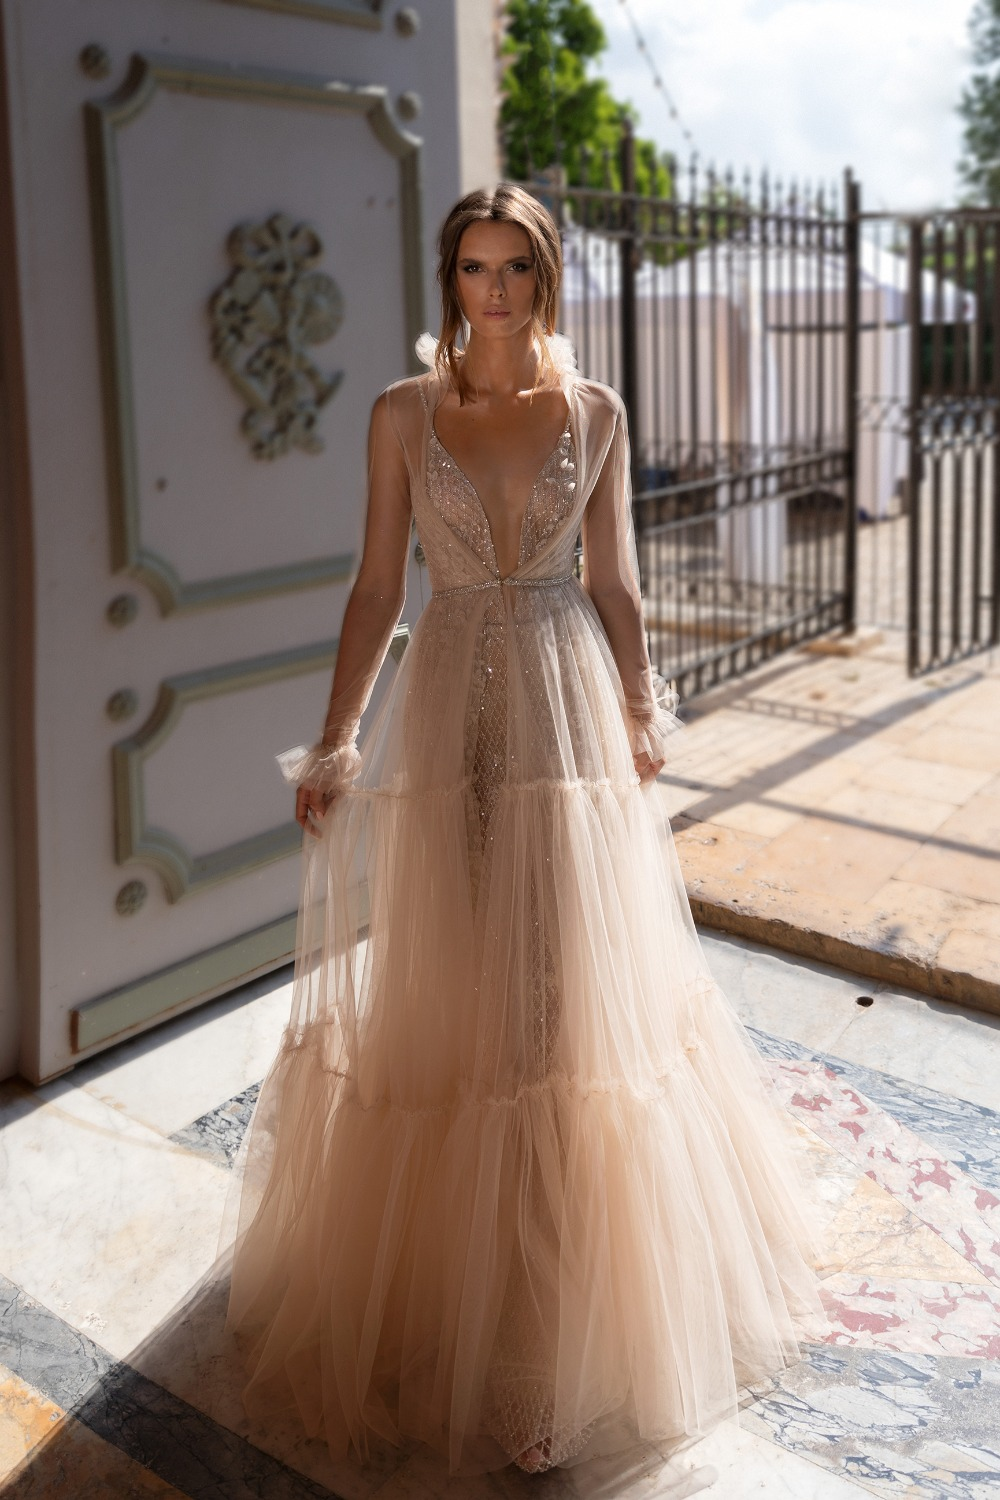 Summer White beach wedding dresses pictures